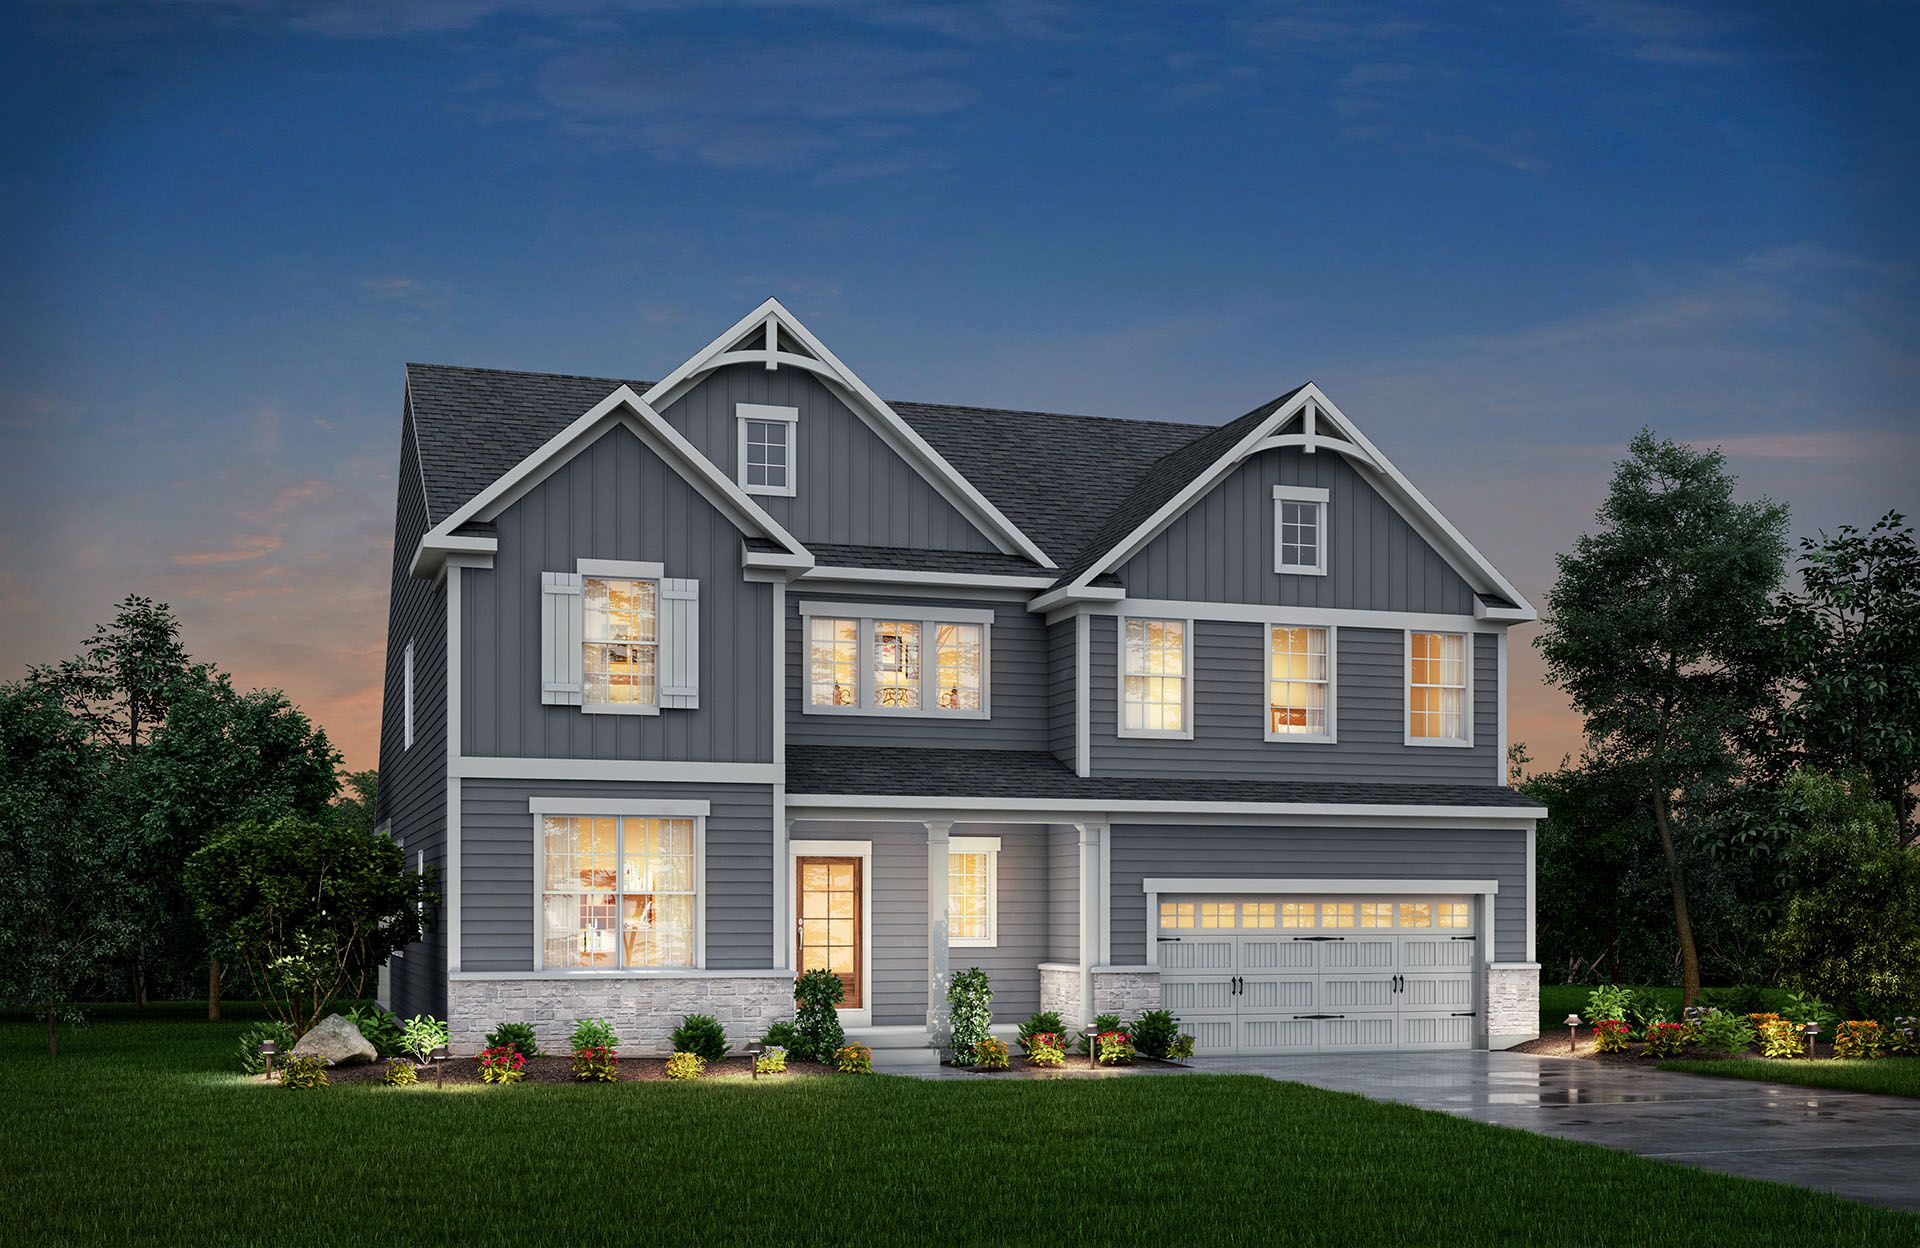 Single Family for Active at Oak Ridge At Tipton Lakes - Hollister 4950 Carr Hill Road Columbus, Indiana 47201 United States